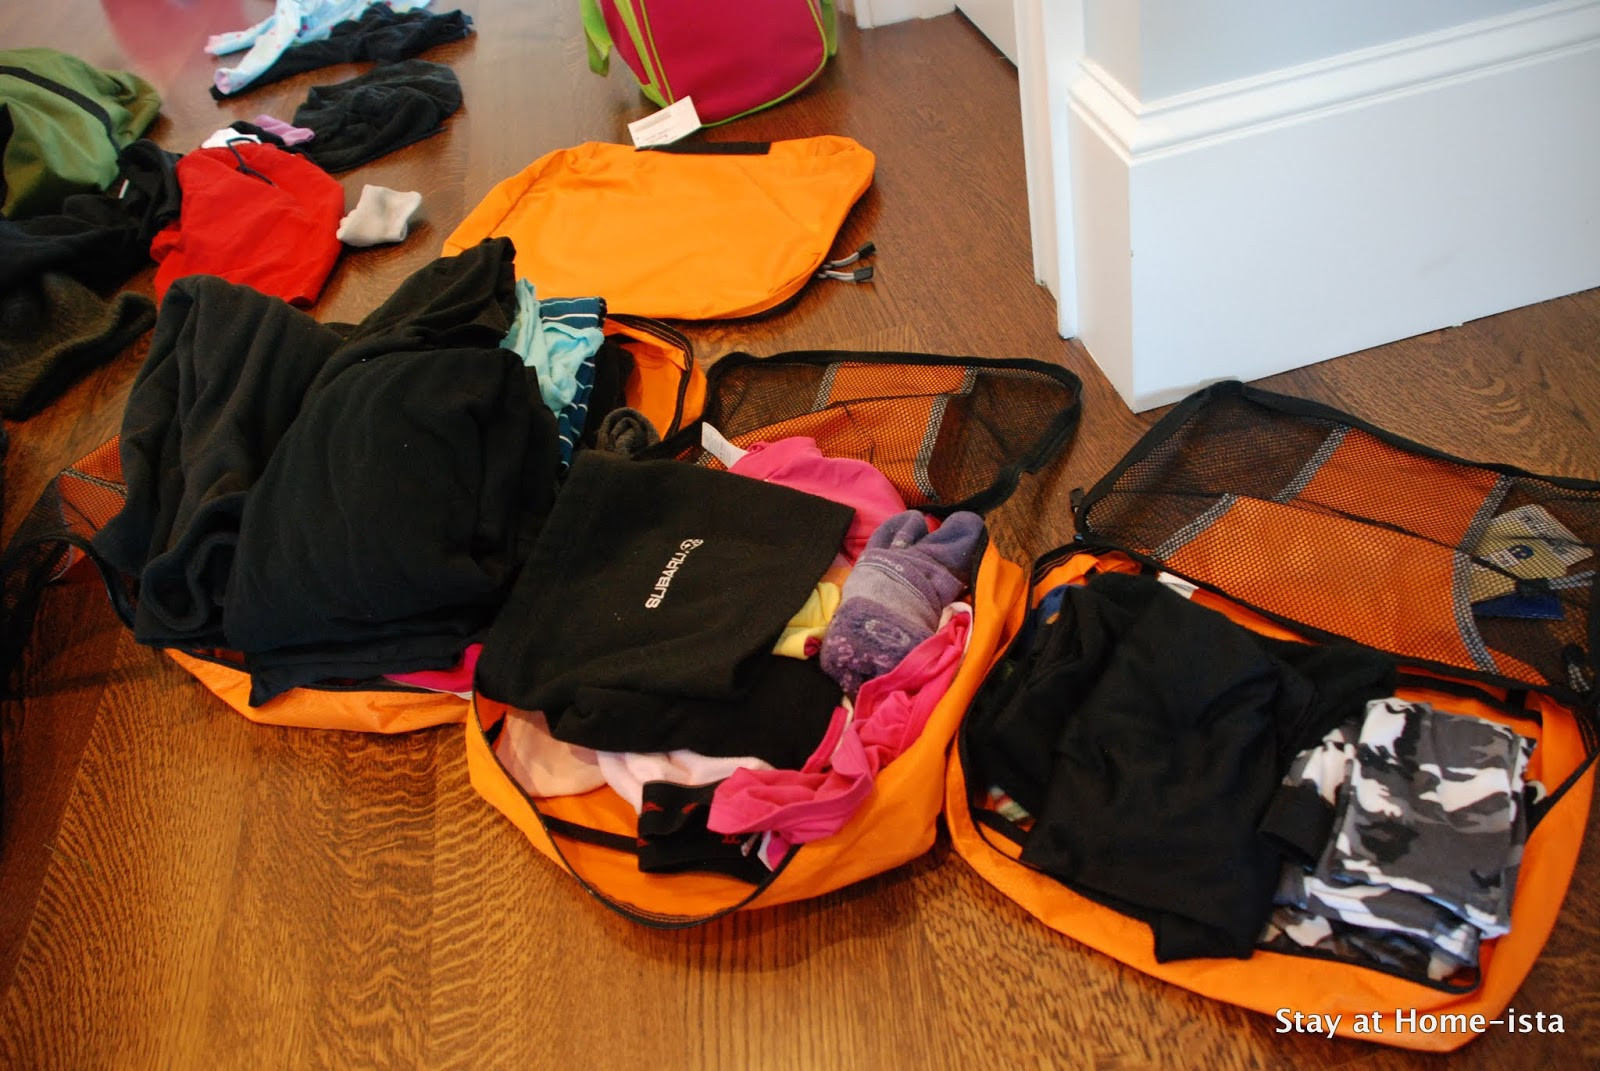 Best ideas about DIY Packing Cubes . Save or Pin Stay at Home ista How to Pack for a Trip with Kids Now.